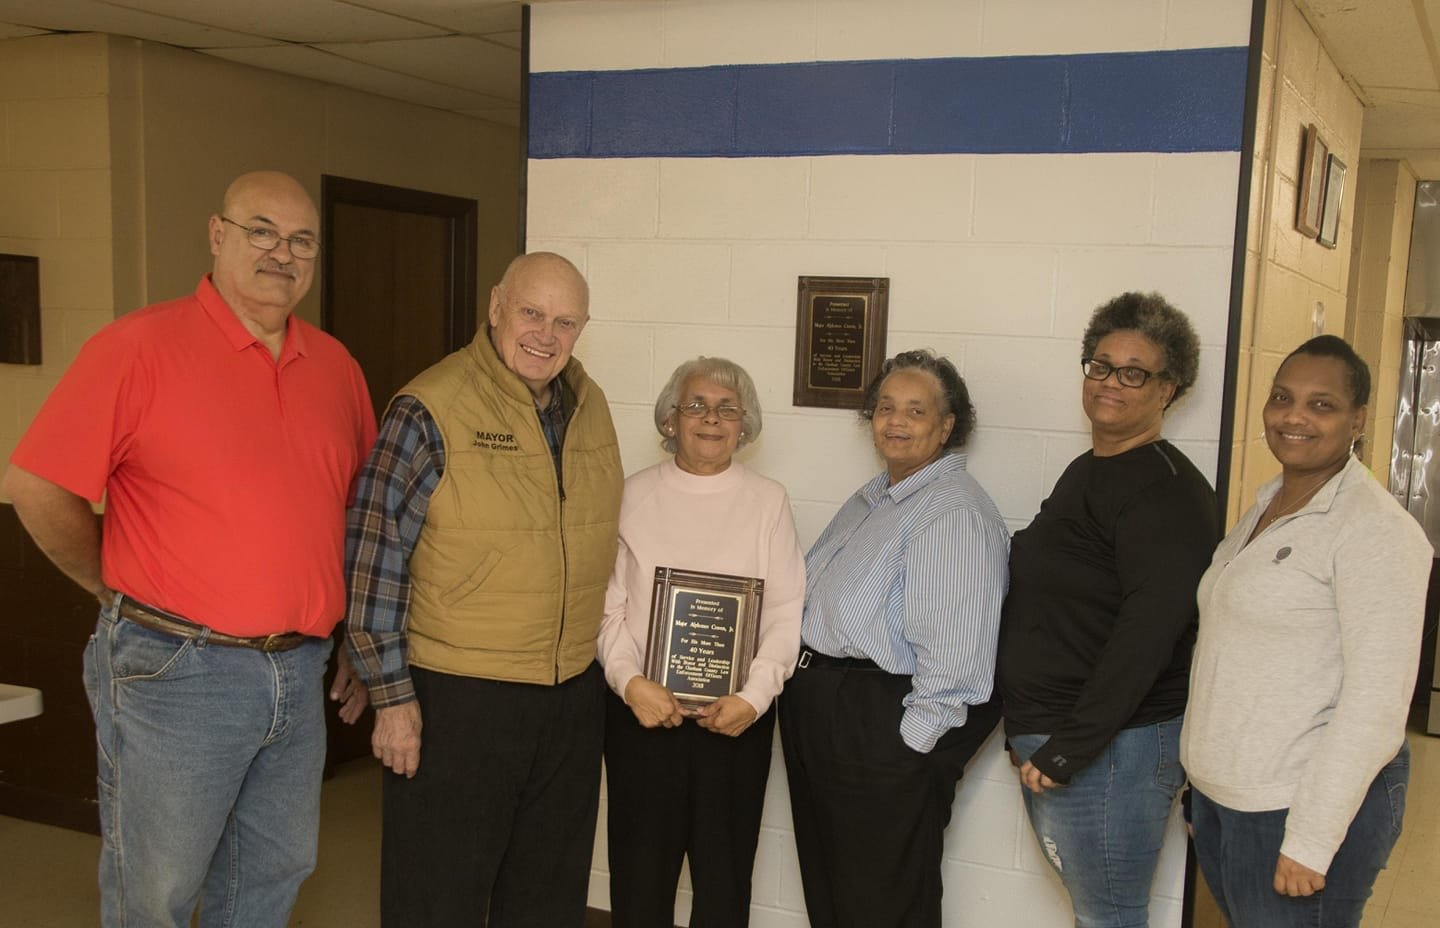 The late Al Craven, a Siler City law en-forcement officer for decades, was honored earlier this month by the Chatham County Law Enforcement Officer's Association. From left are Mike Koszulinski, president of the association; Siler City Mayor John Grimes, Craven's wife, Alice, and his daughters Lynn Craven, Renee Craven and Angela Cones.